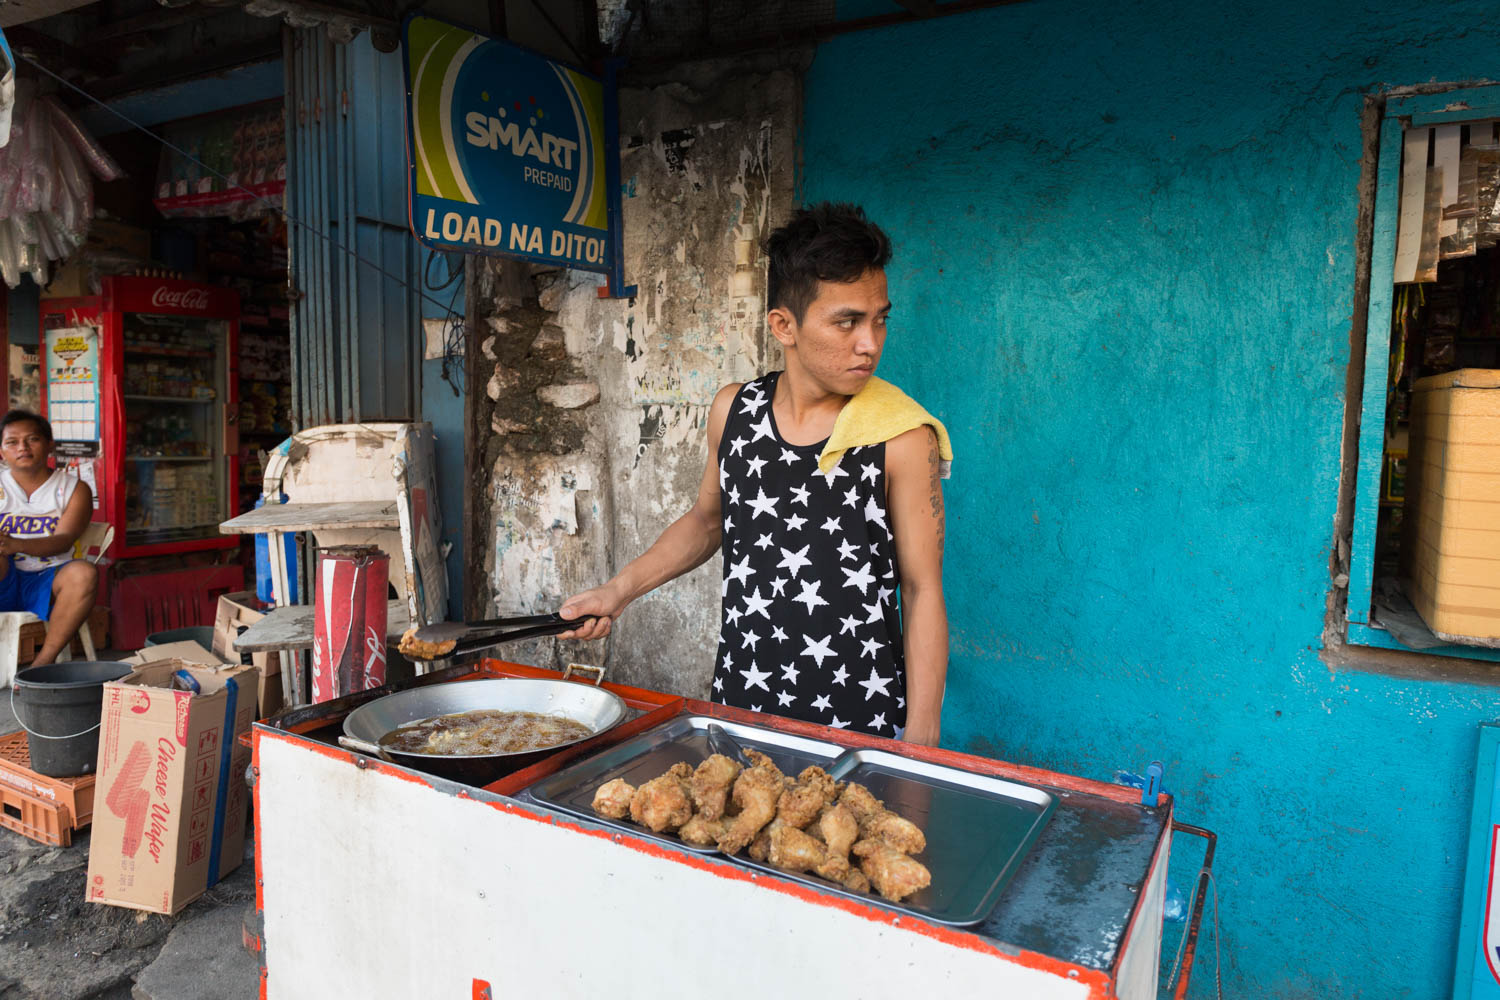 In the main street of Buli, in Muntinlupa, a young boy is selling chicken legs with breadcrumbs.Buli, Muntinlupa, Metro Manila, Philippines - 12/01/2016.